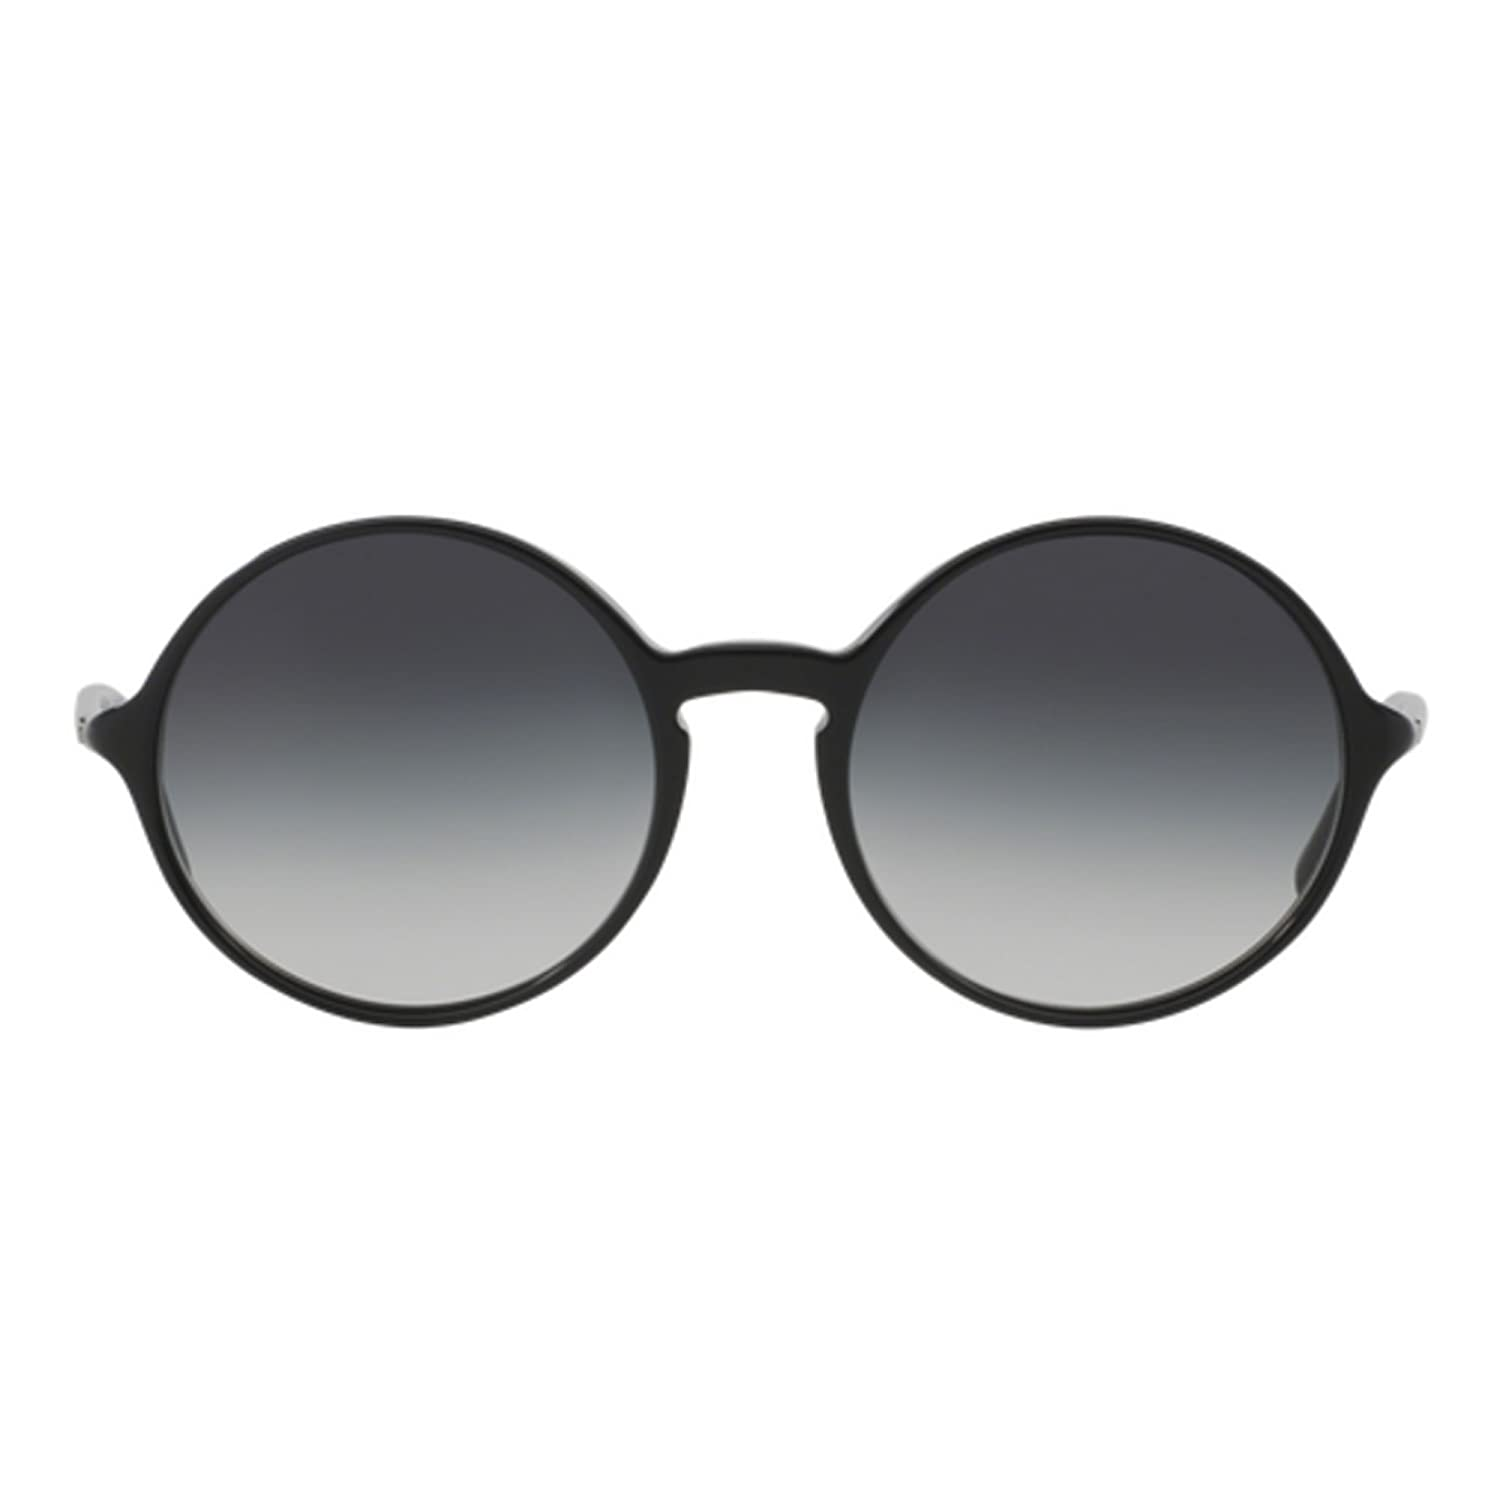 Amazon.com: Chanel Firma Noir CH5279 C501s6 55 – 19 Medio ...